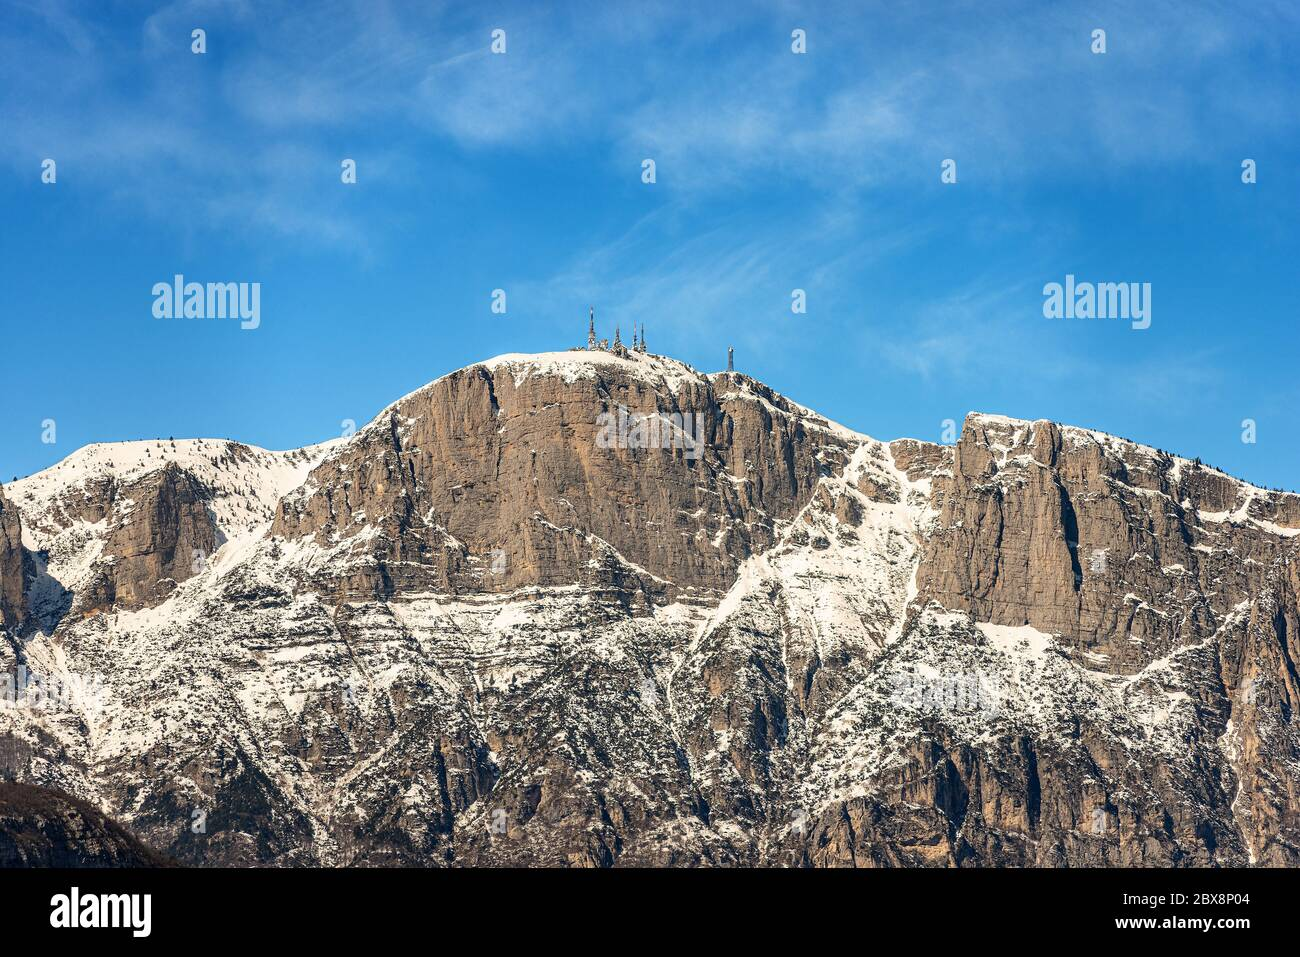 Peak of the Paganella or cima Roda (2125 m), snow caped Alps with the antennas of the weather station, seen from the Trento, Trentino, Italy. Stock Photo